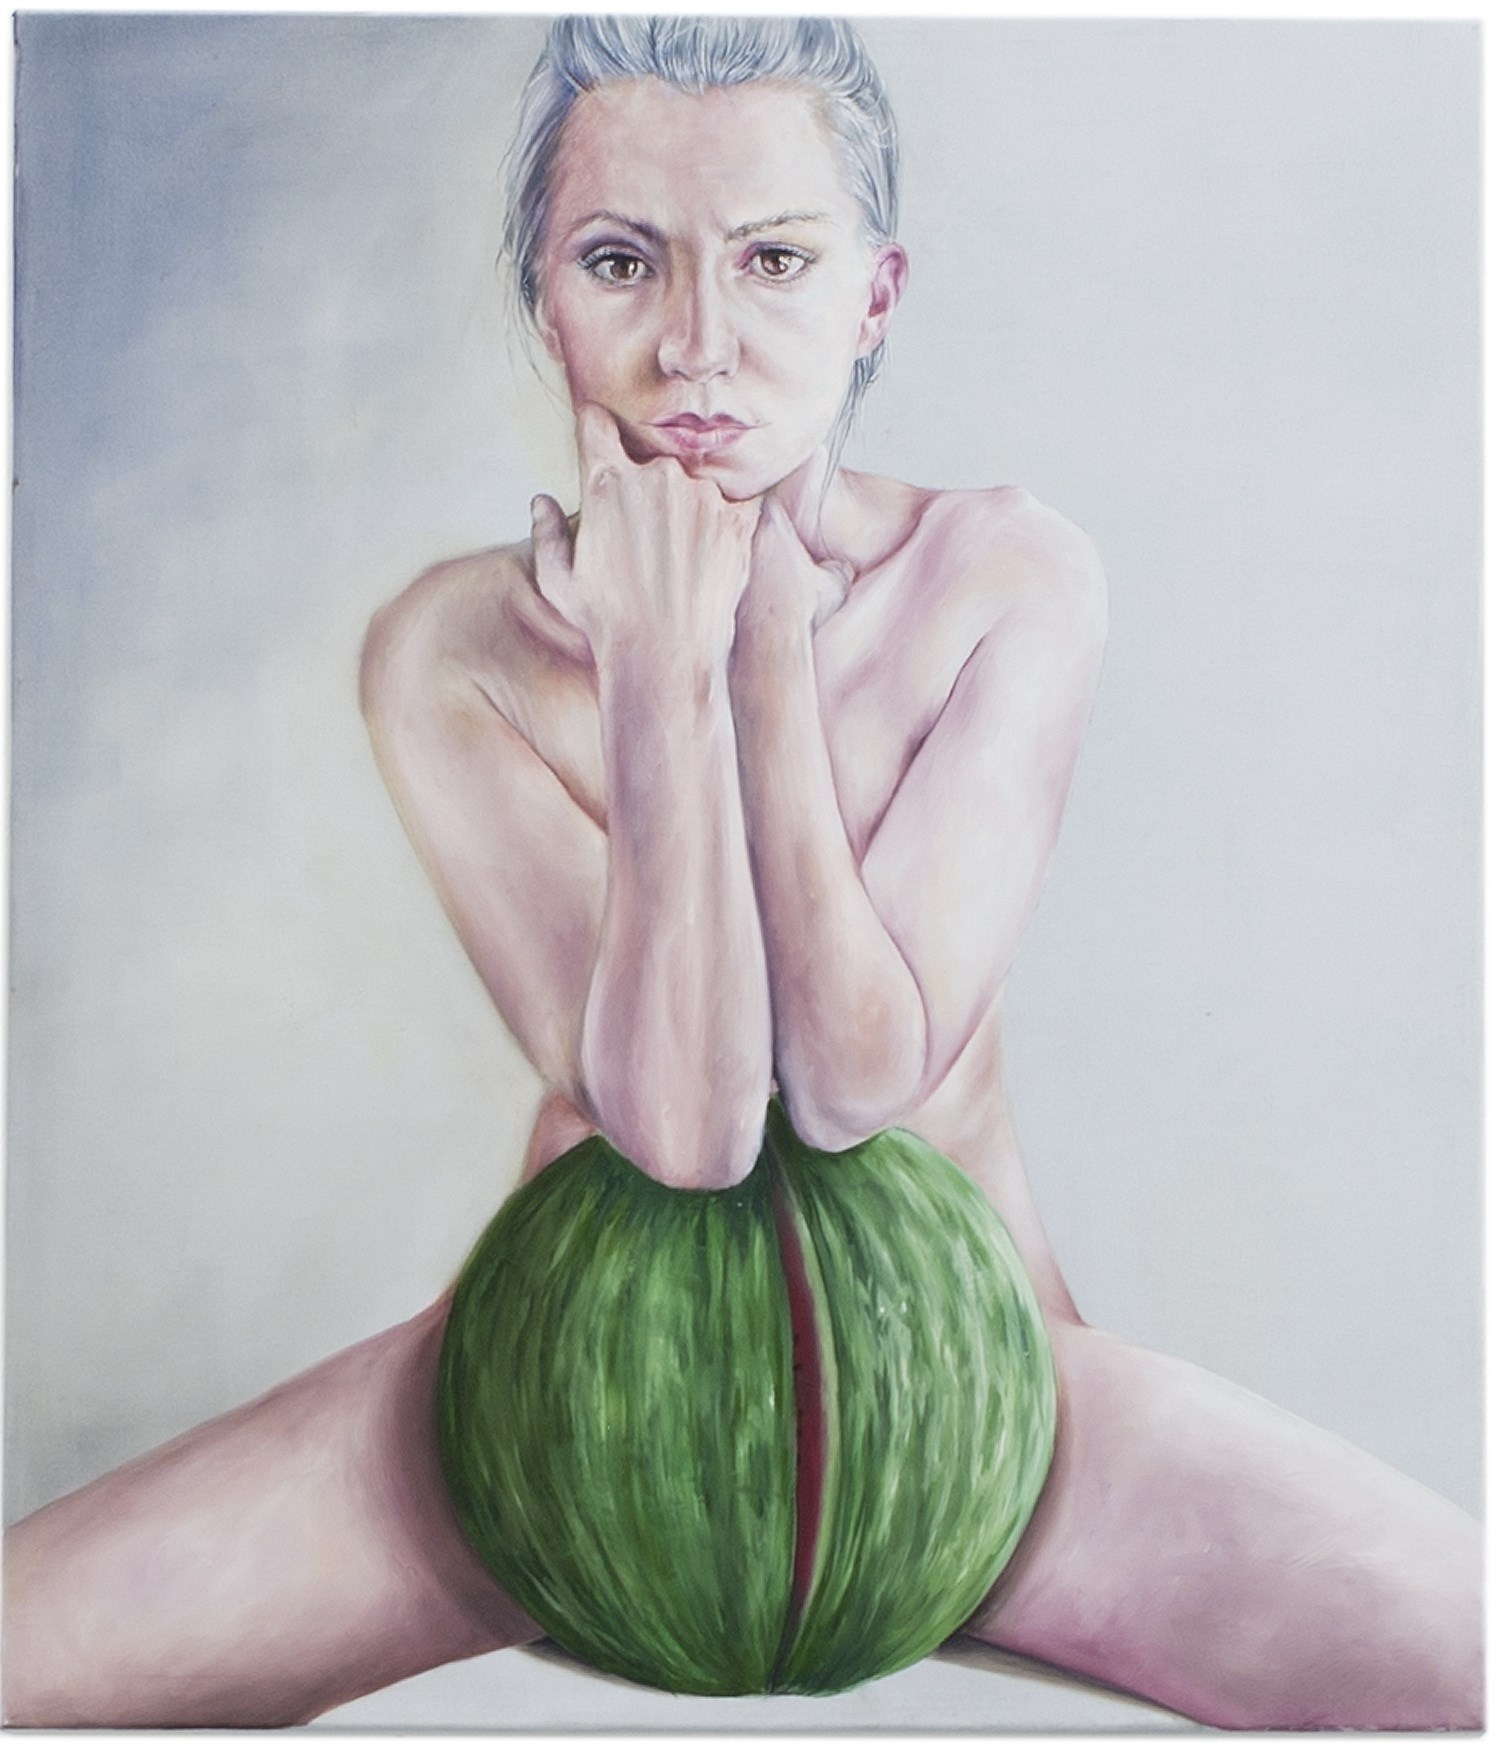 You're feminism bores me I prefer fruit, Pintura Óleo Figura Humana original por Ana  Monteiro